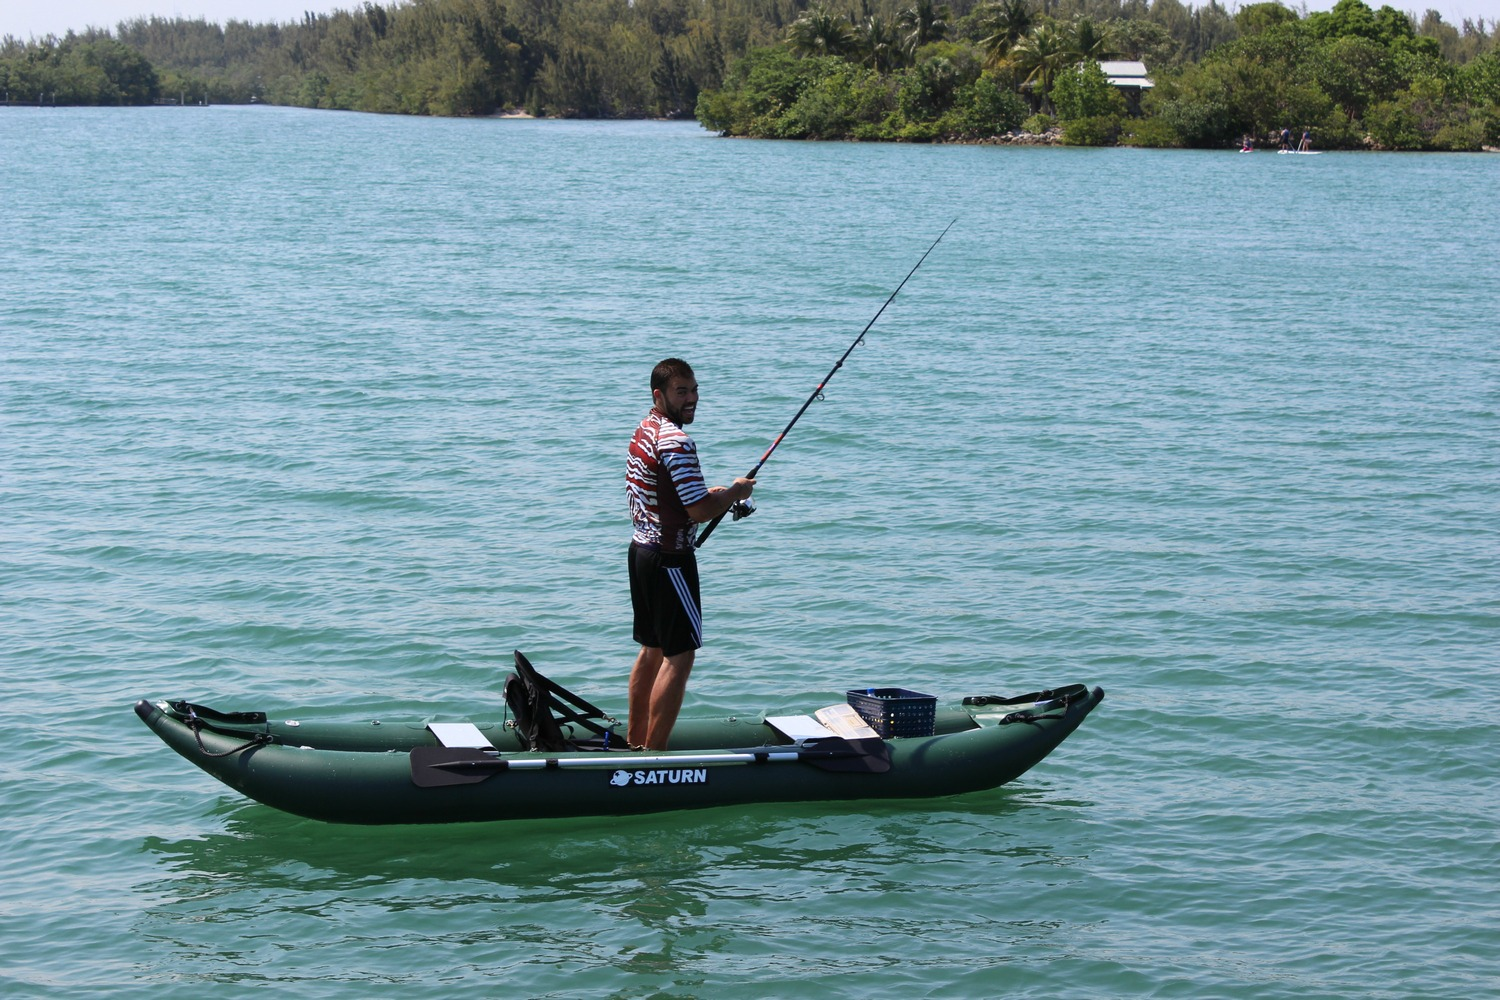 Saturn ocean pro angler inflatable fishing kayaks for How many fishing rods per person in texas